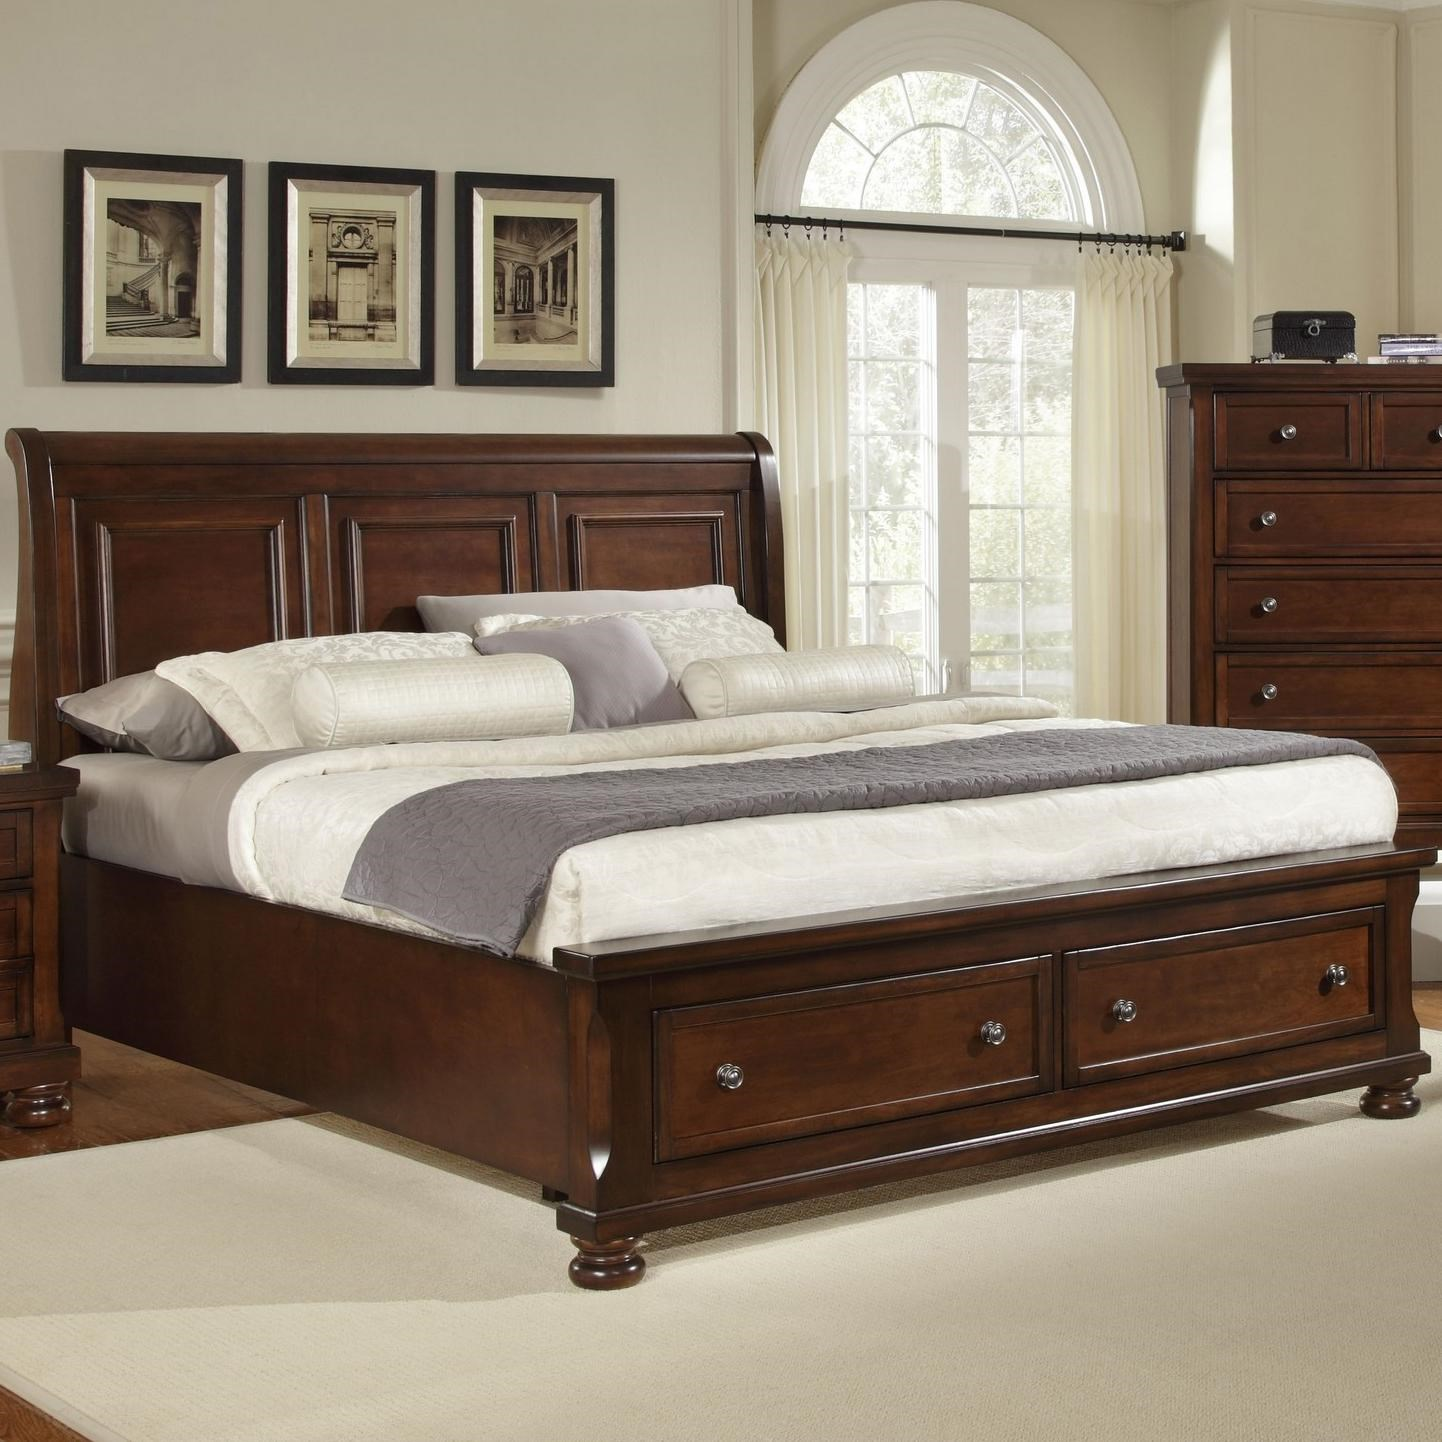 vaughan bassett reflections king storage bed with sleigh headboard great american home store platform bedslow profile beds